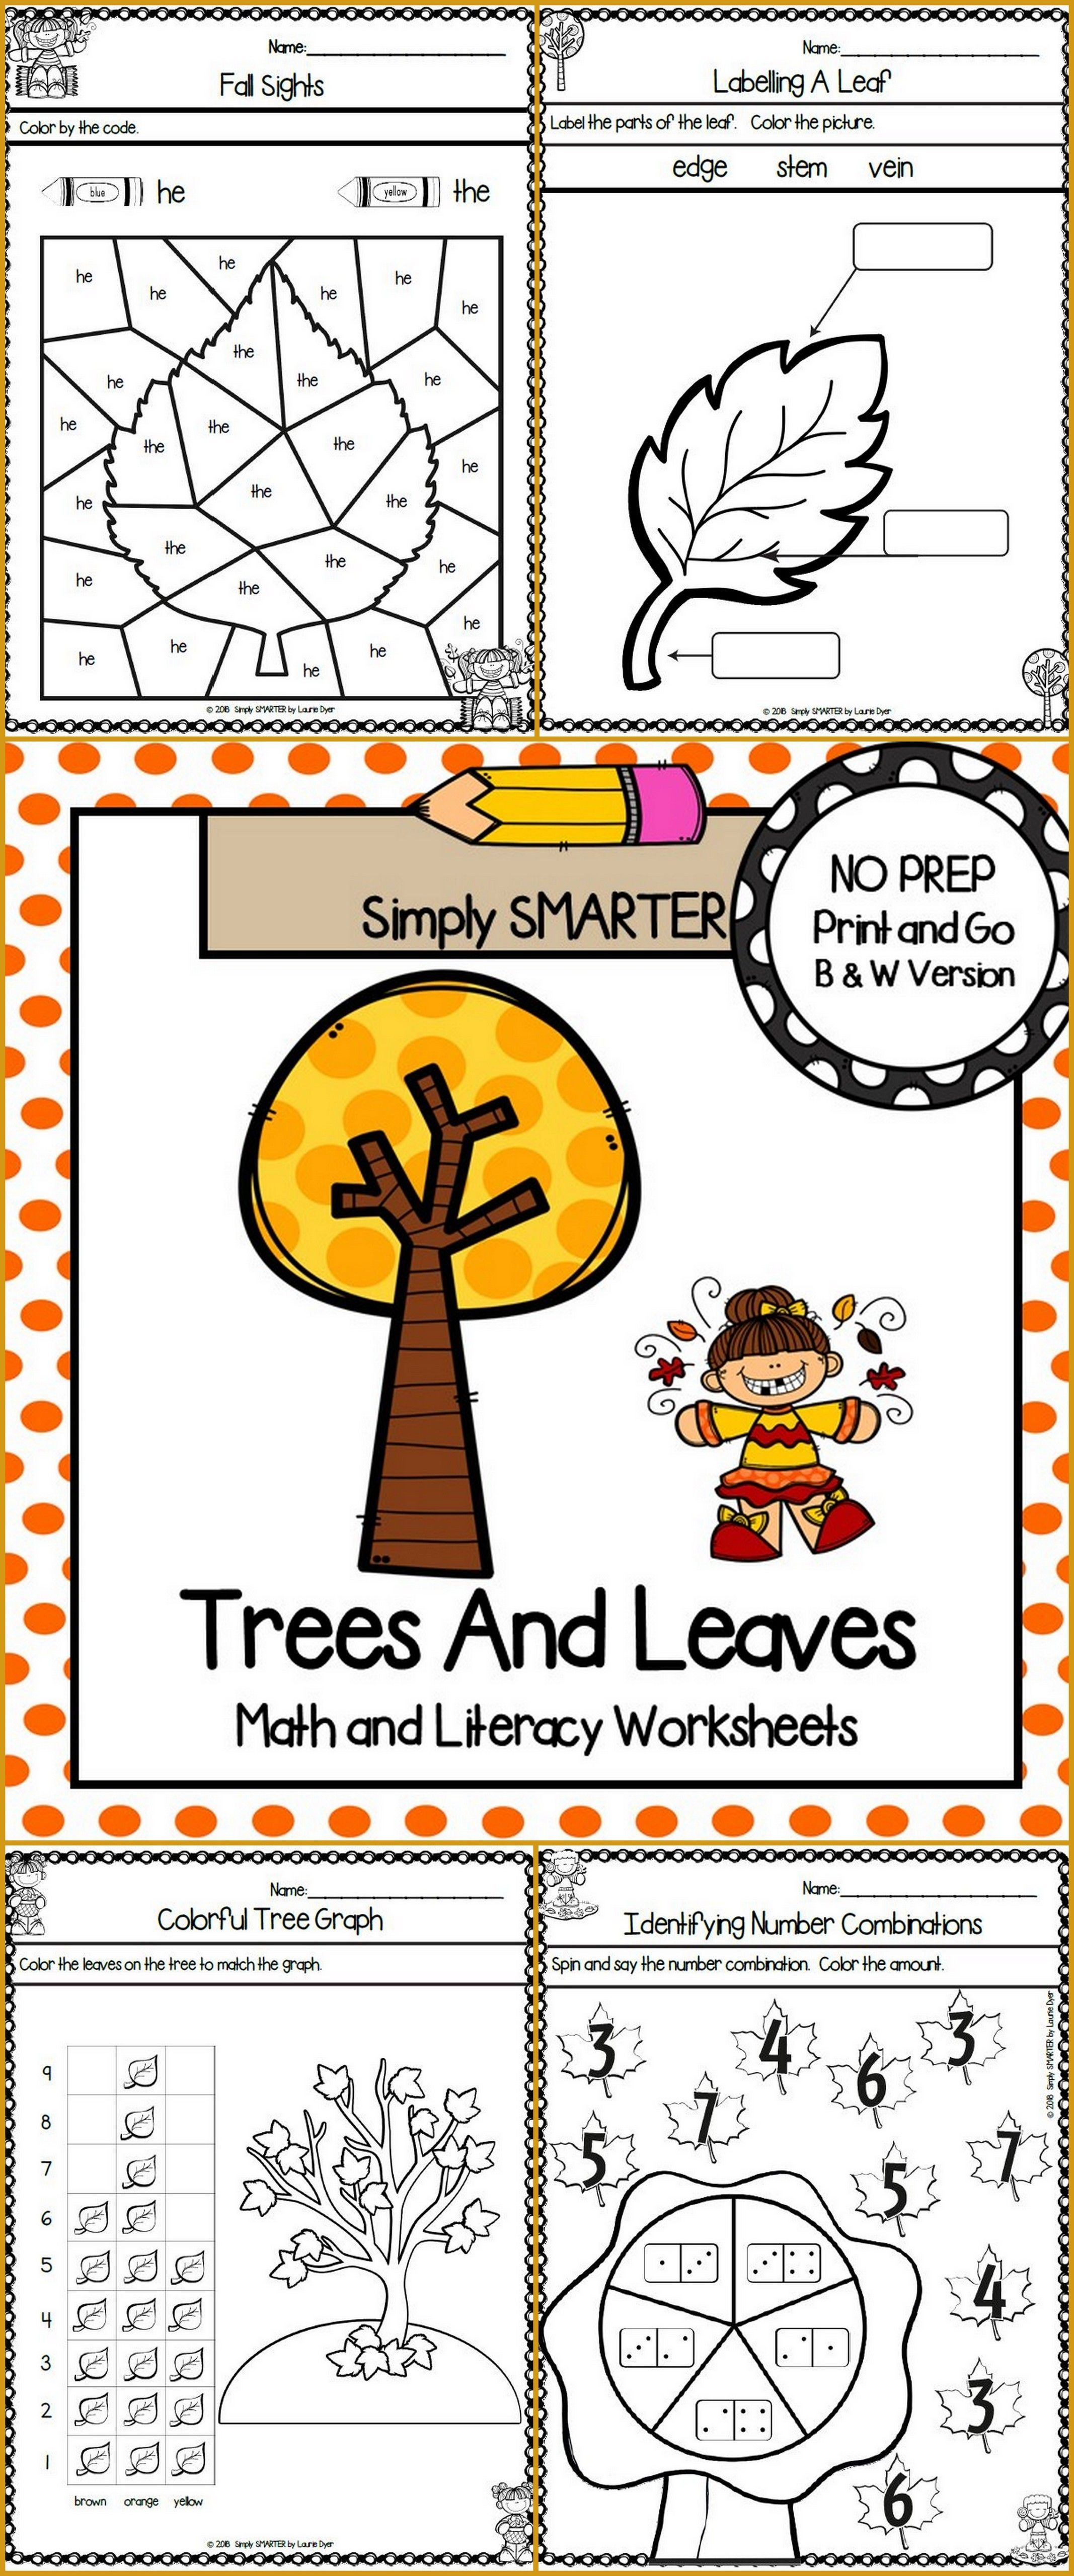 Trees And Leaves Themed Kindergarten Math And Literacy